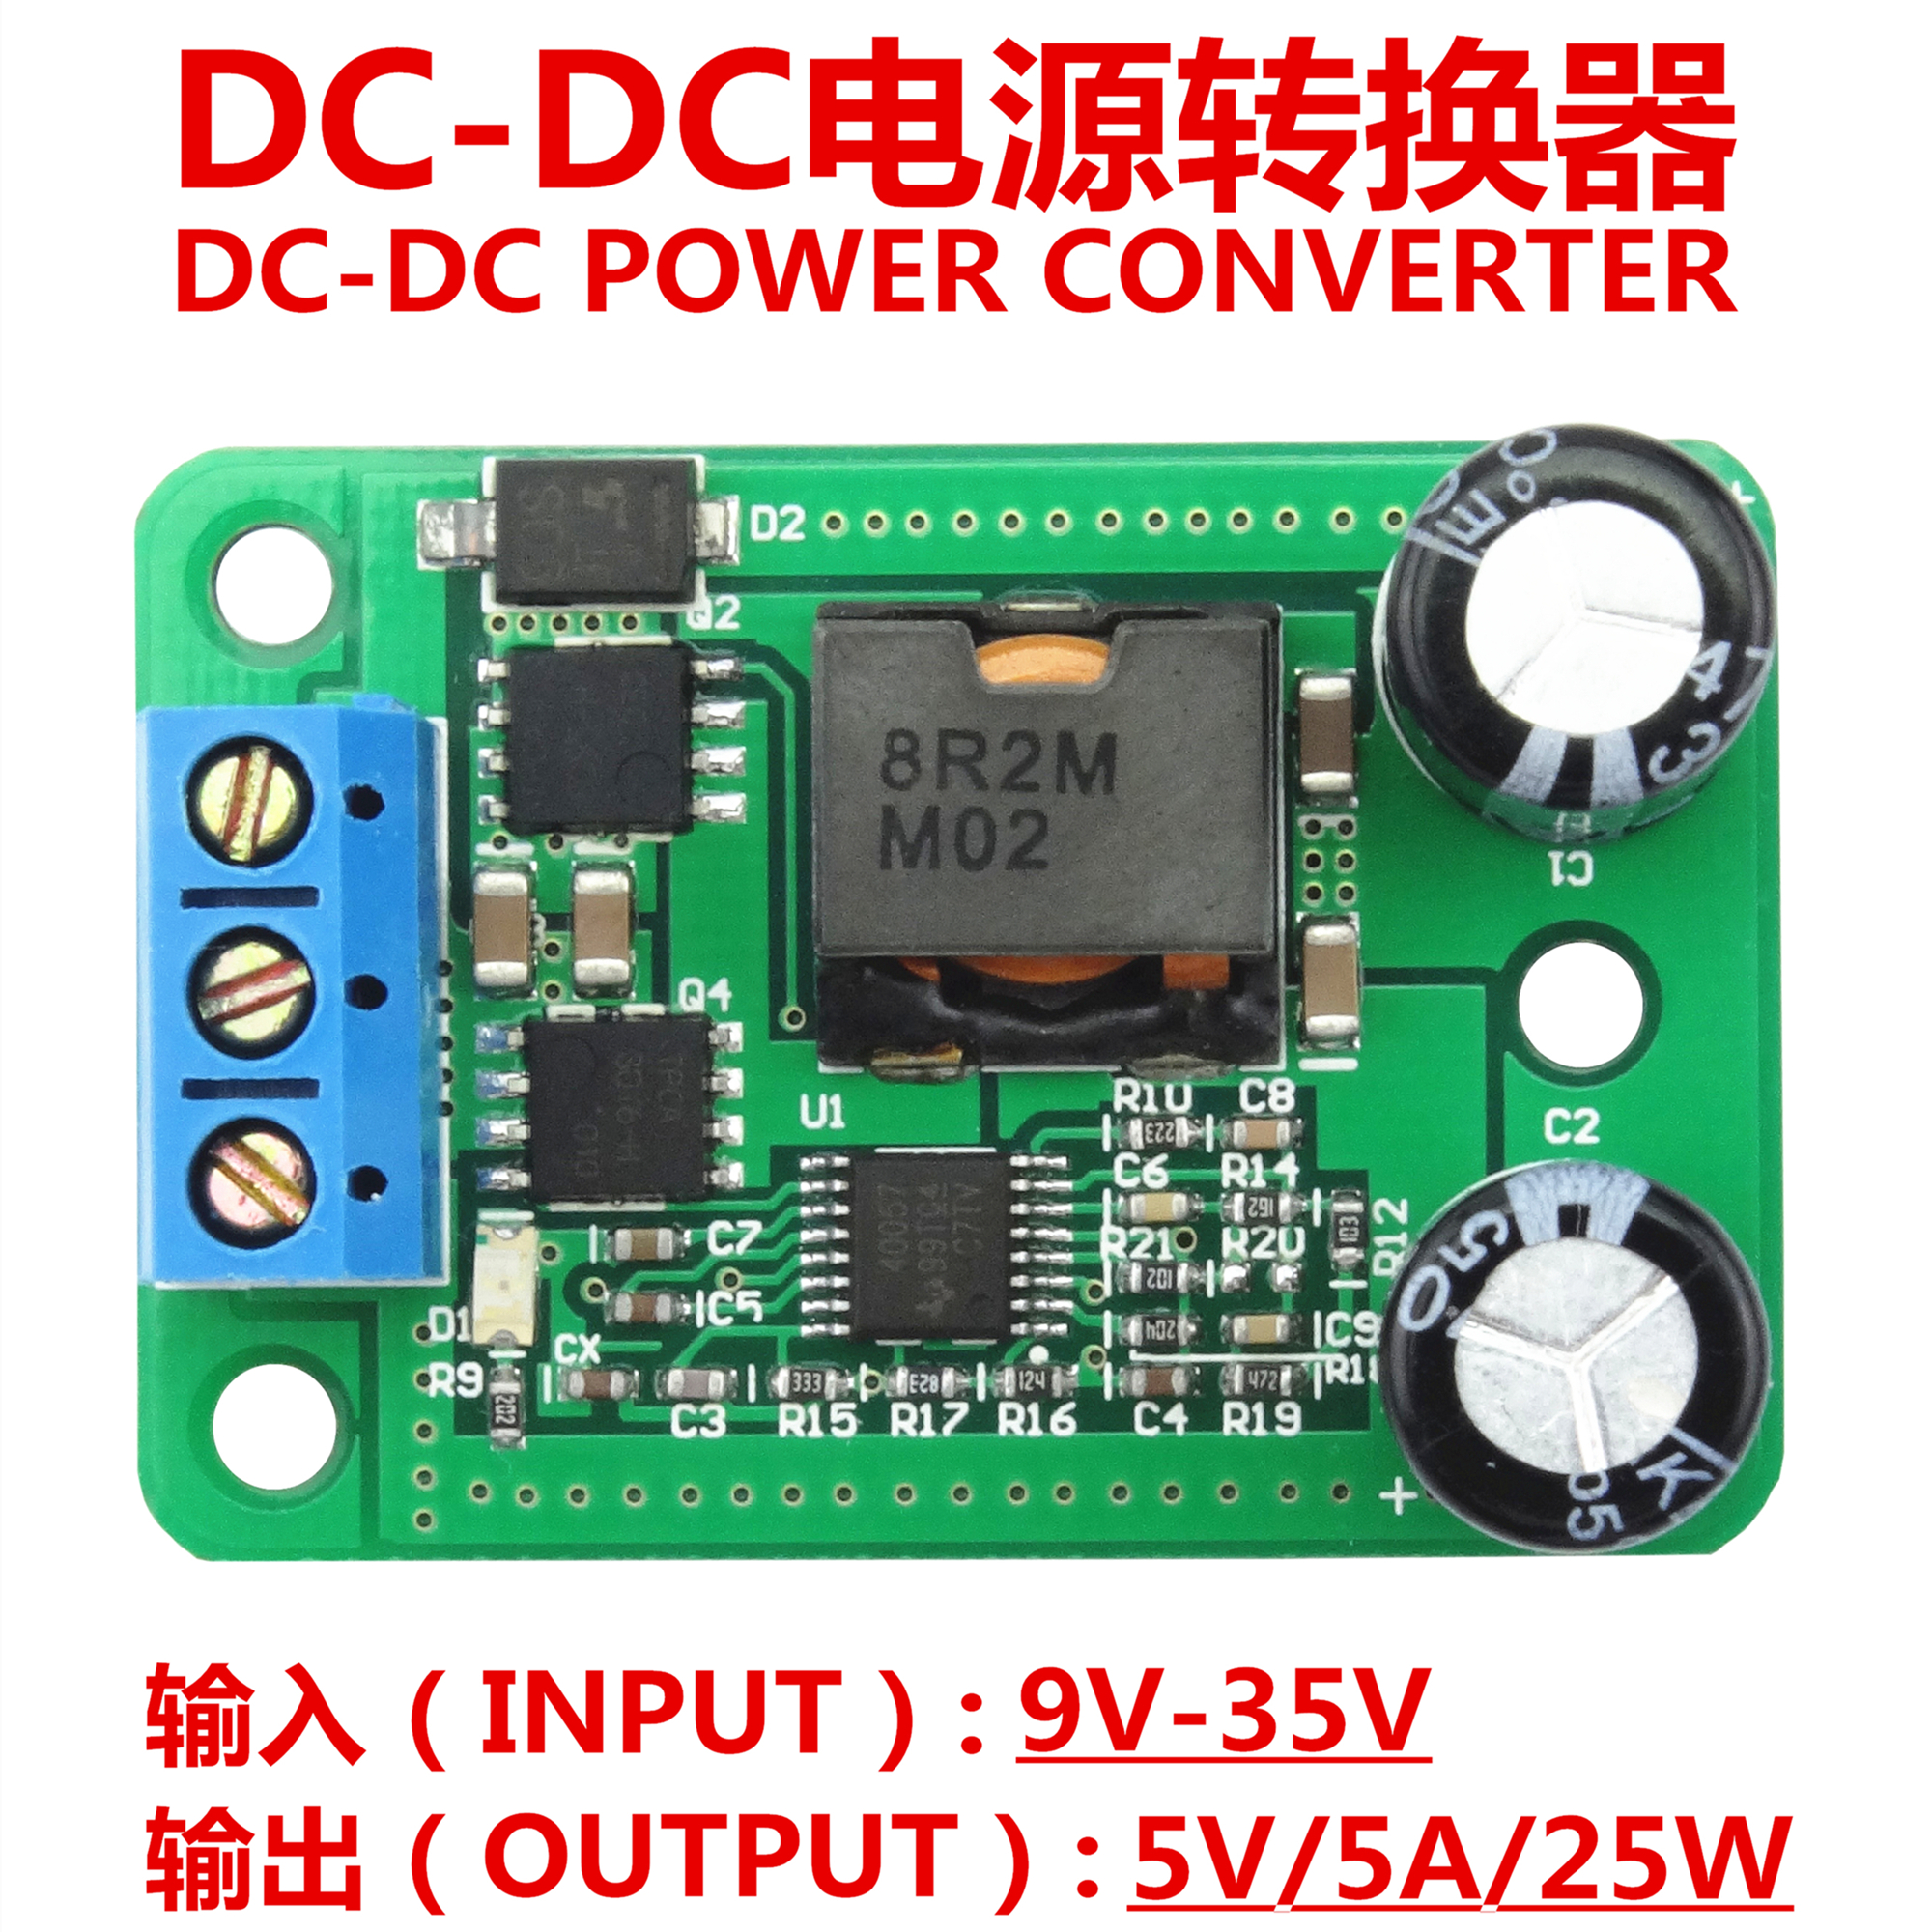 DC-DC buck module 24v/12V to 5V/5A power IN (9-35V) to replace the 055L ultra LM2596S цена и фото